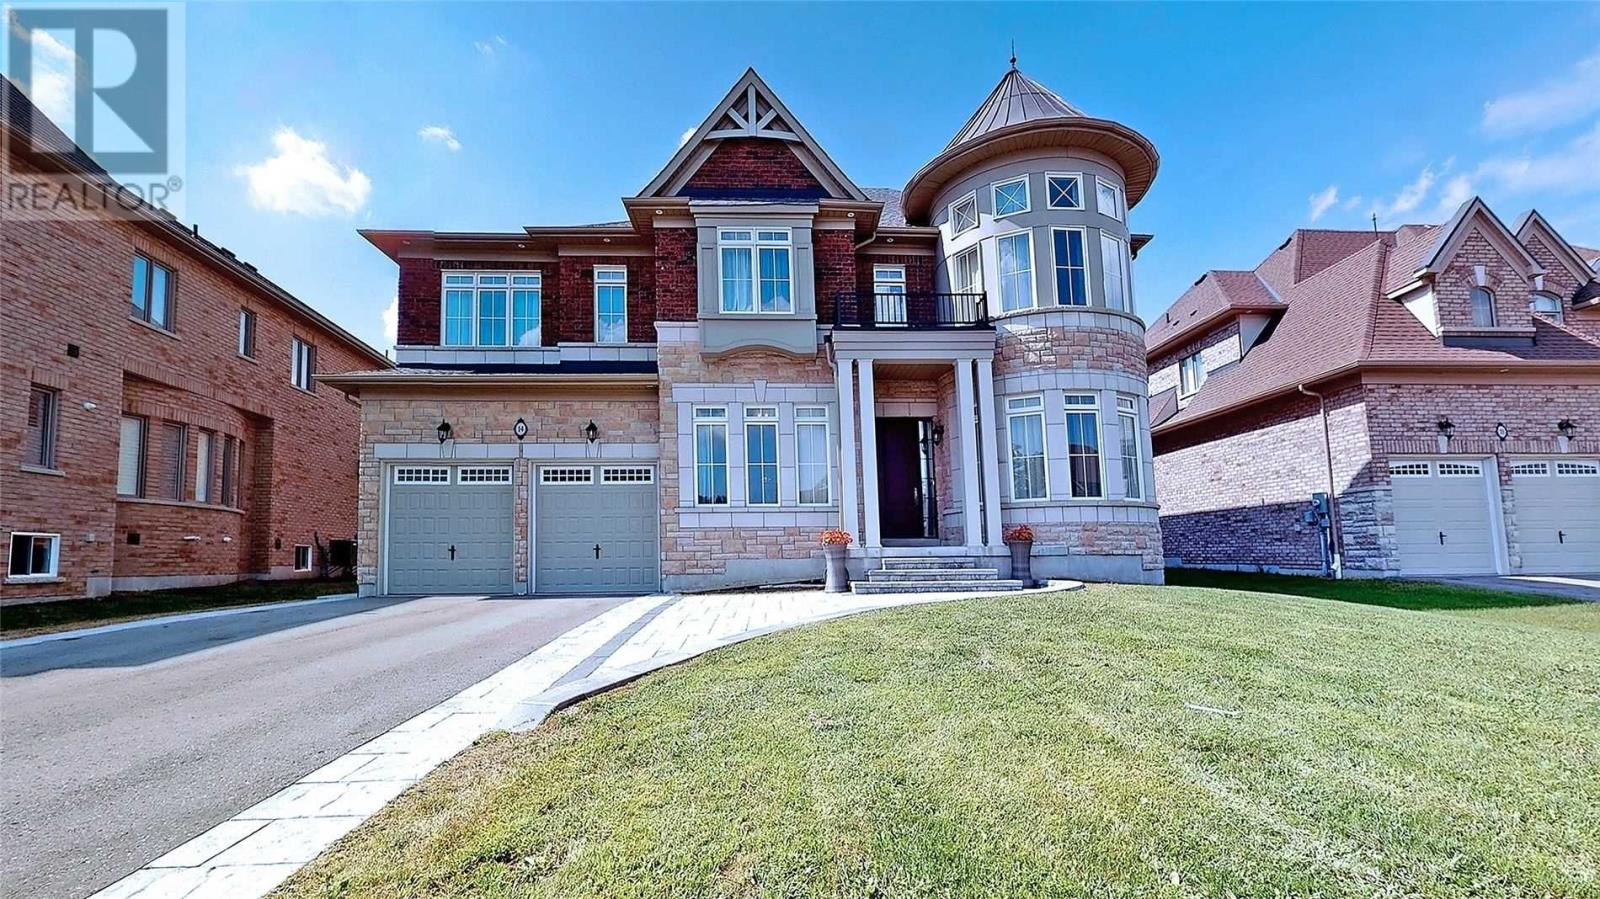 14 SOMER RUMM CRT, Whitchurch-Stouffville